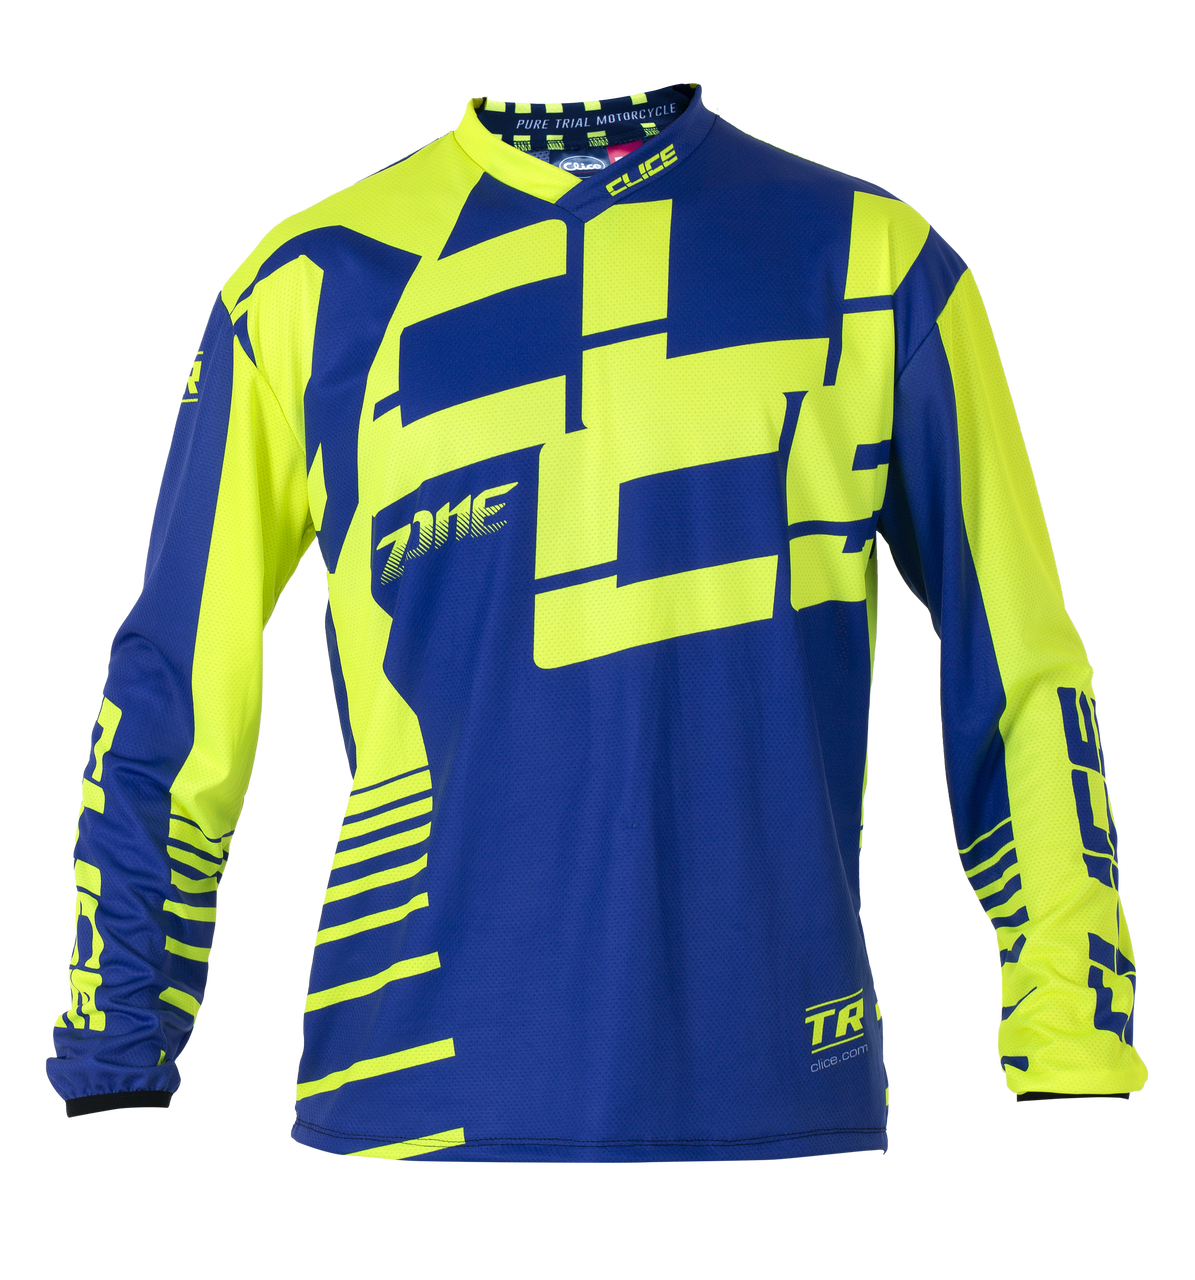 2019 Clice Zone men's jersey, blue/ yellow